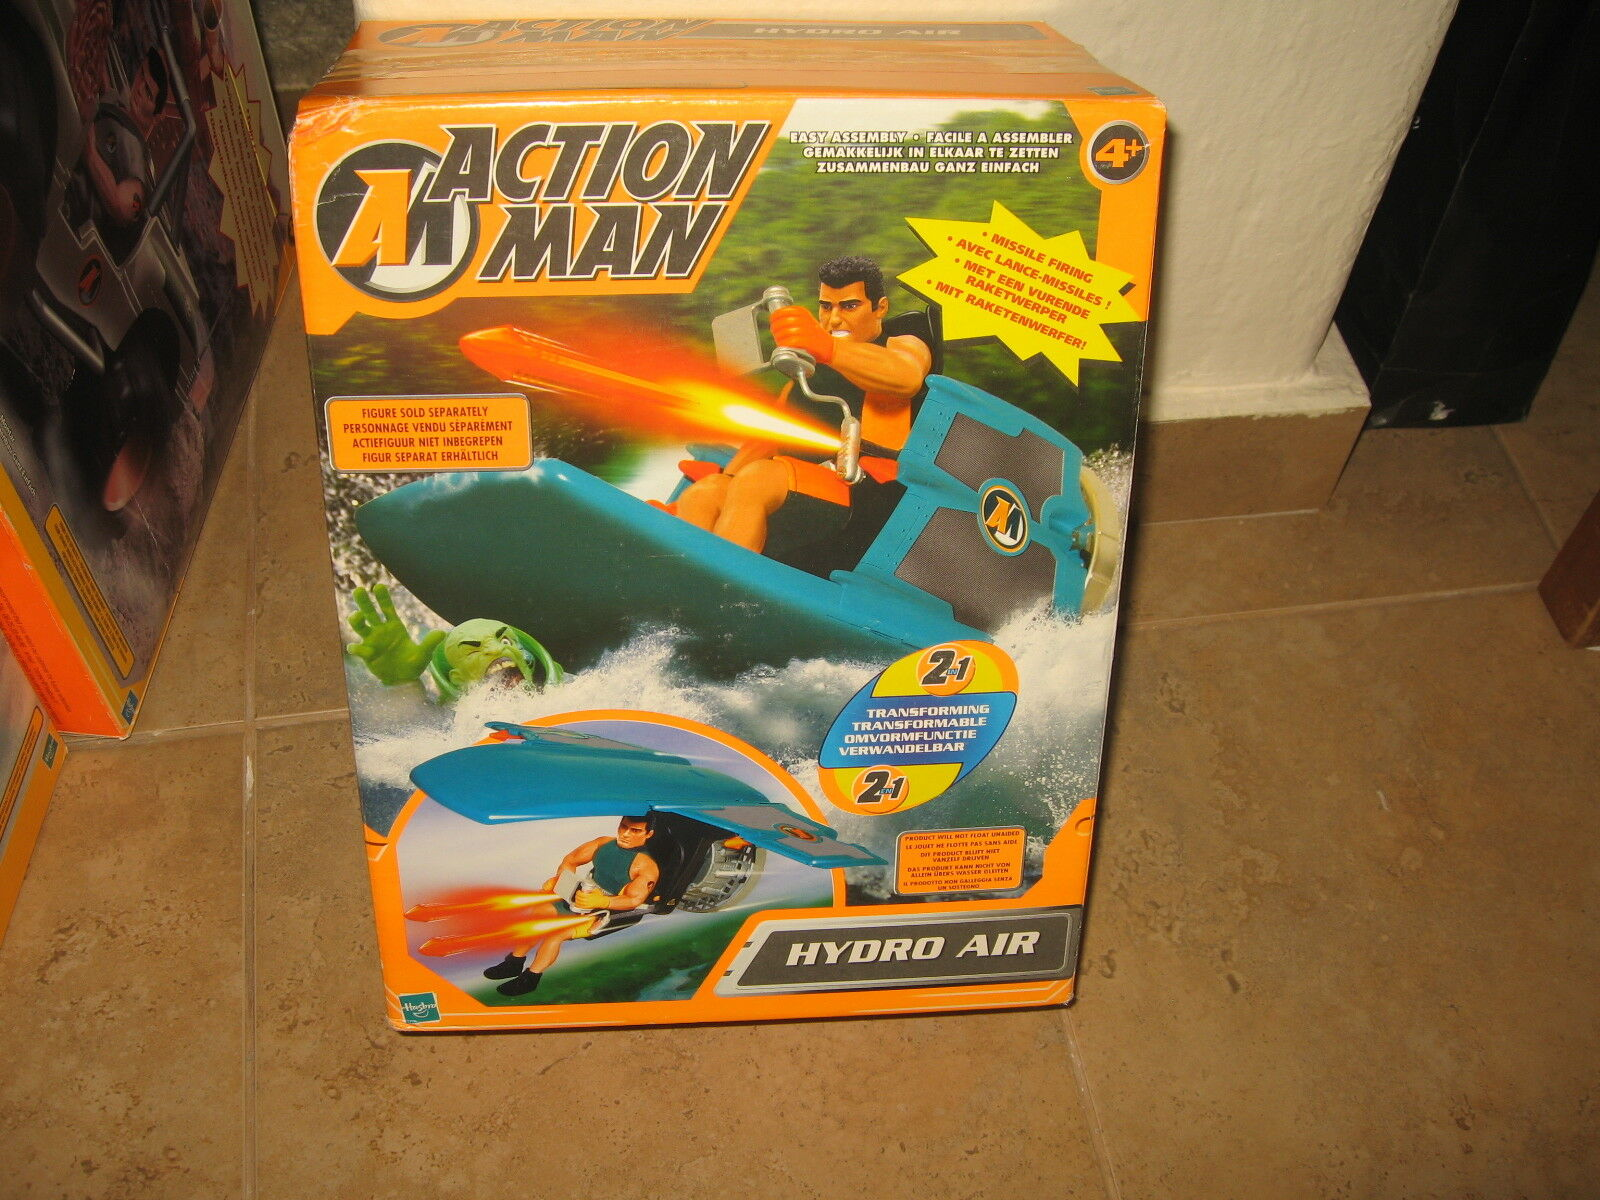 Action Man Hydro Air  Transforming 2 in 1   New in Box made by Hasbro in 2001